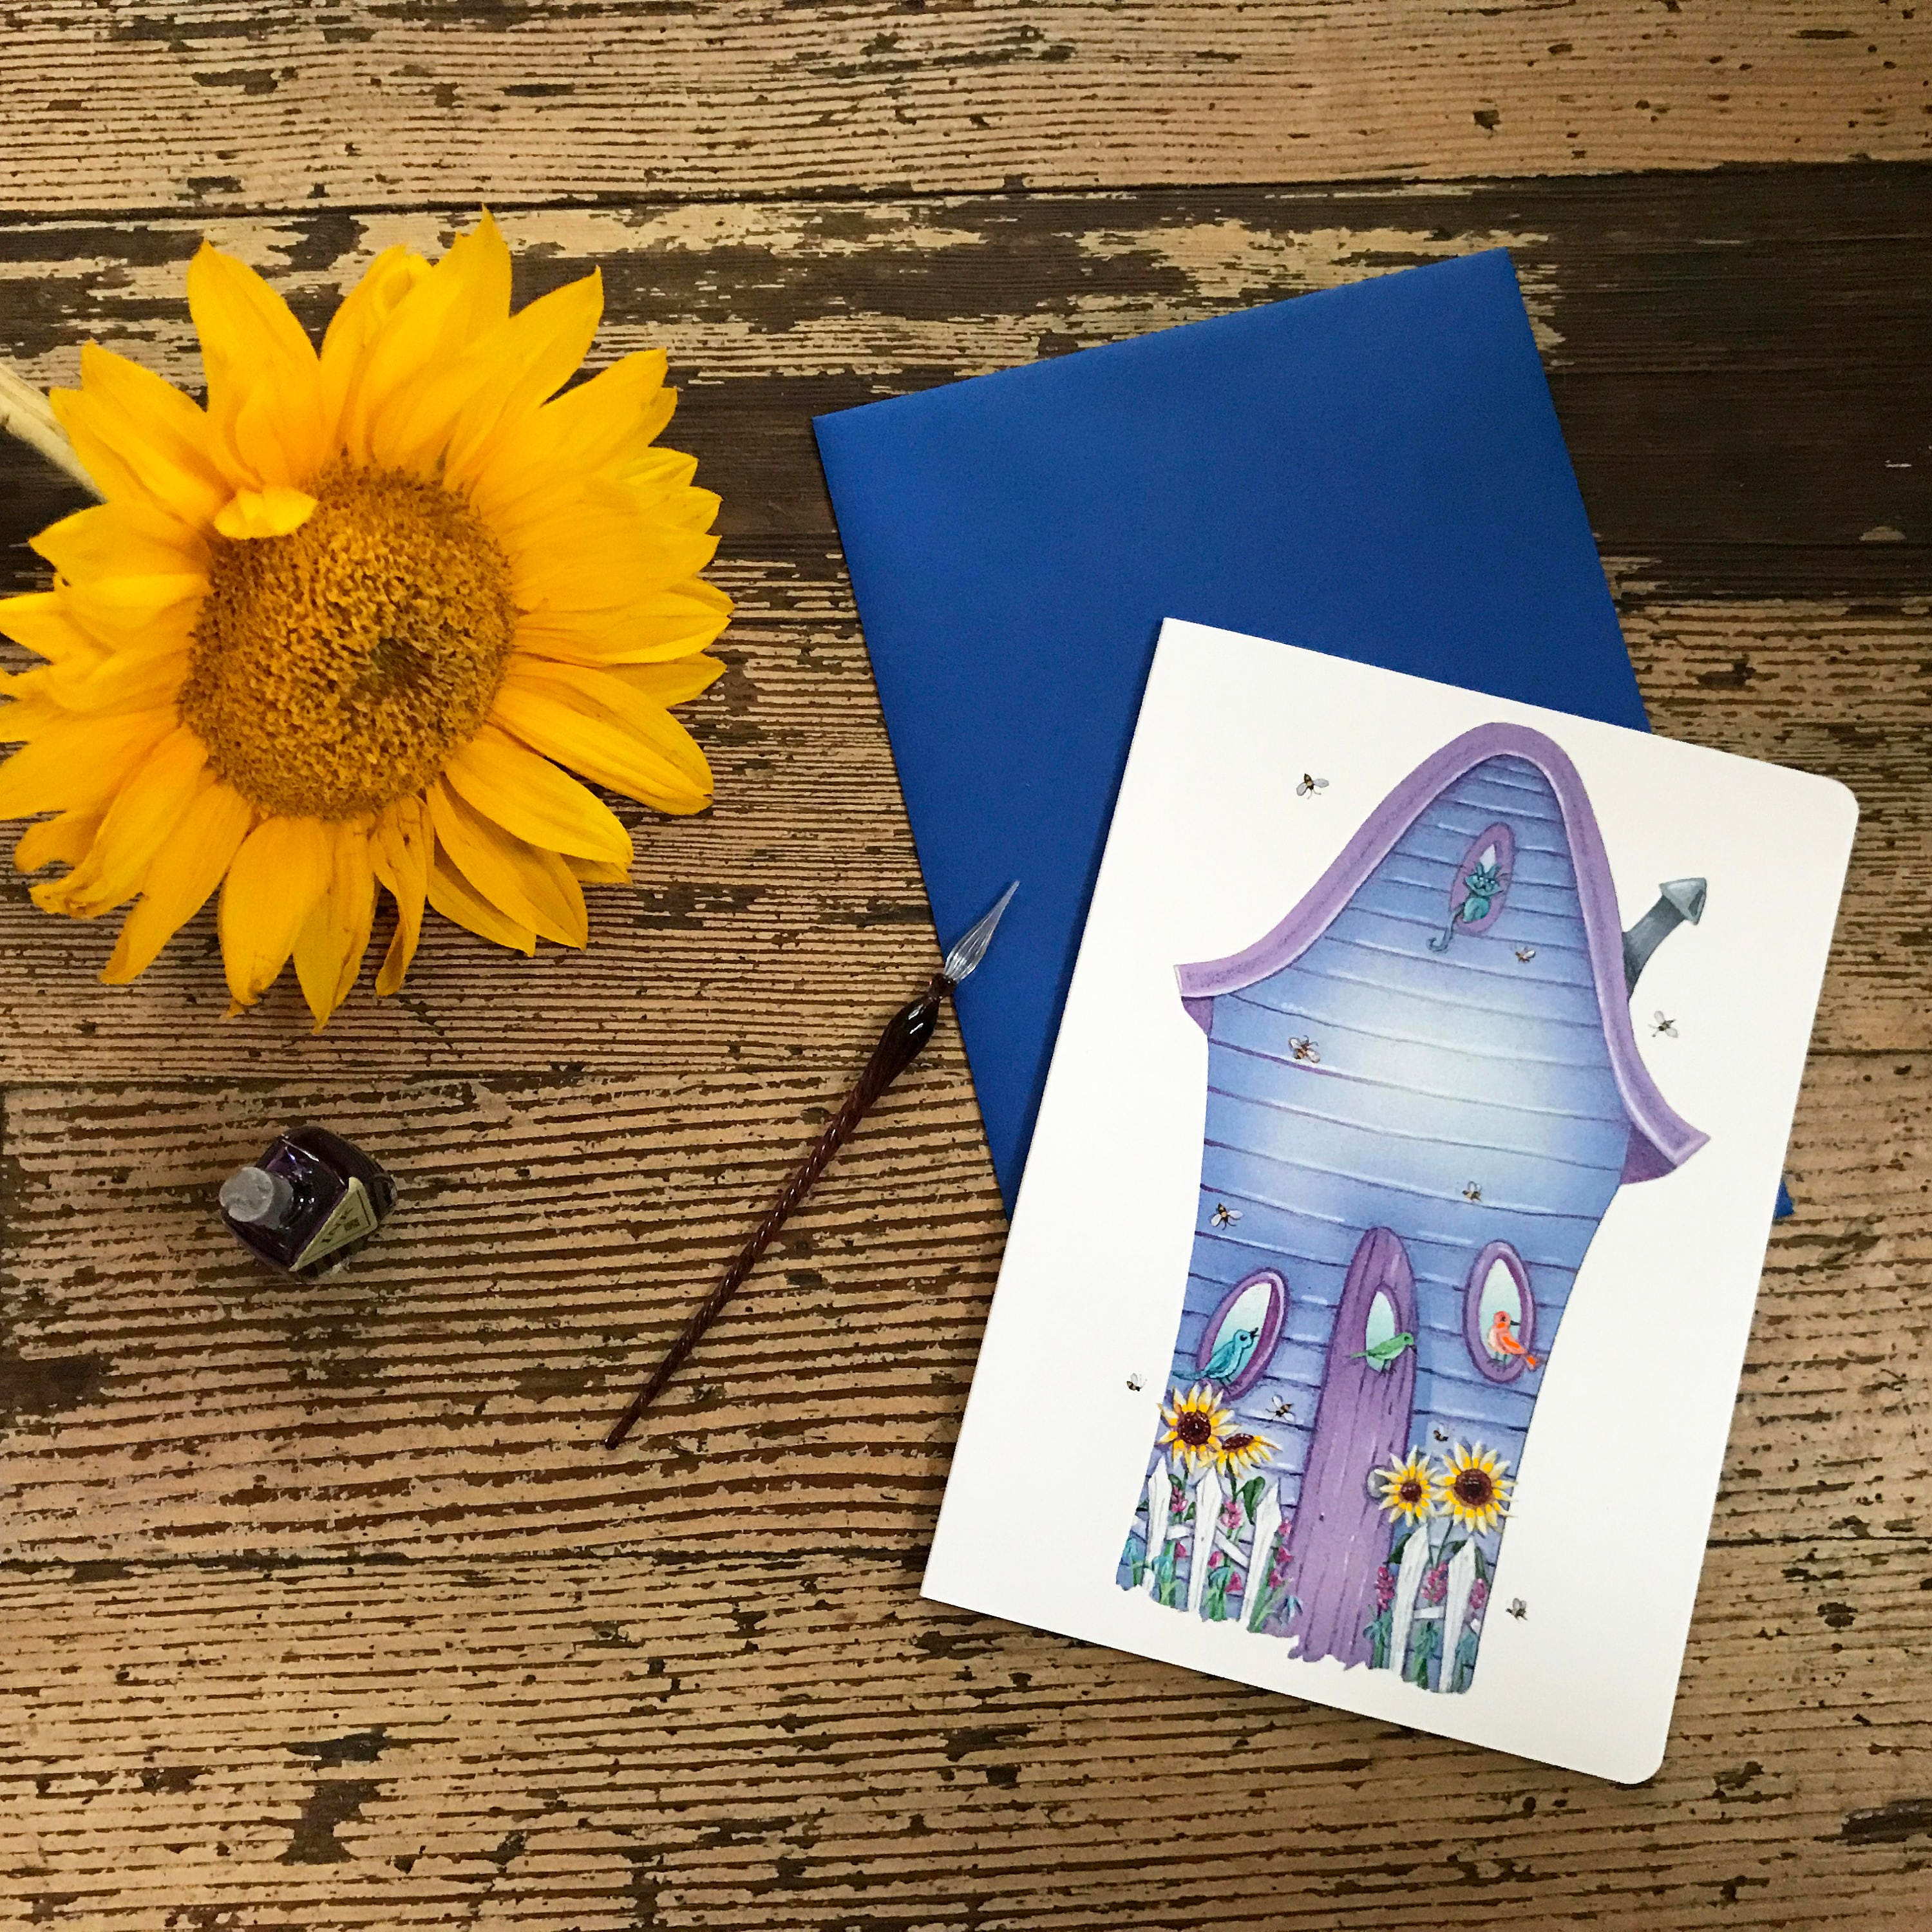 Birds and the bees blank card house warming greeting card home birds and the bees blank card house warming greeting card home sweet home postal card floral greetings valerie walsh greeting cards kristyandbryce Image collections